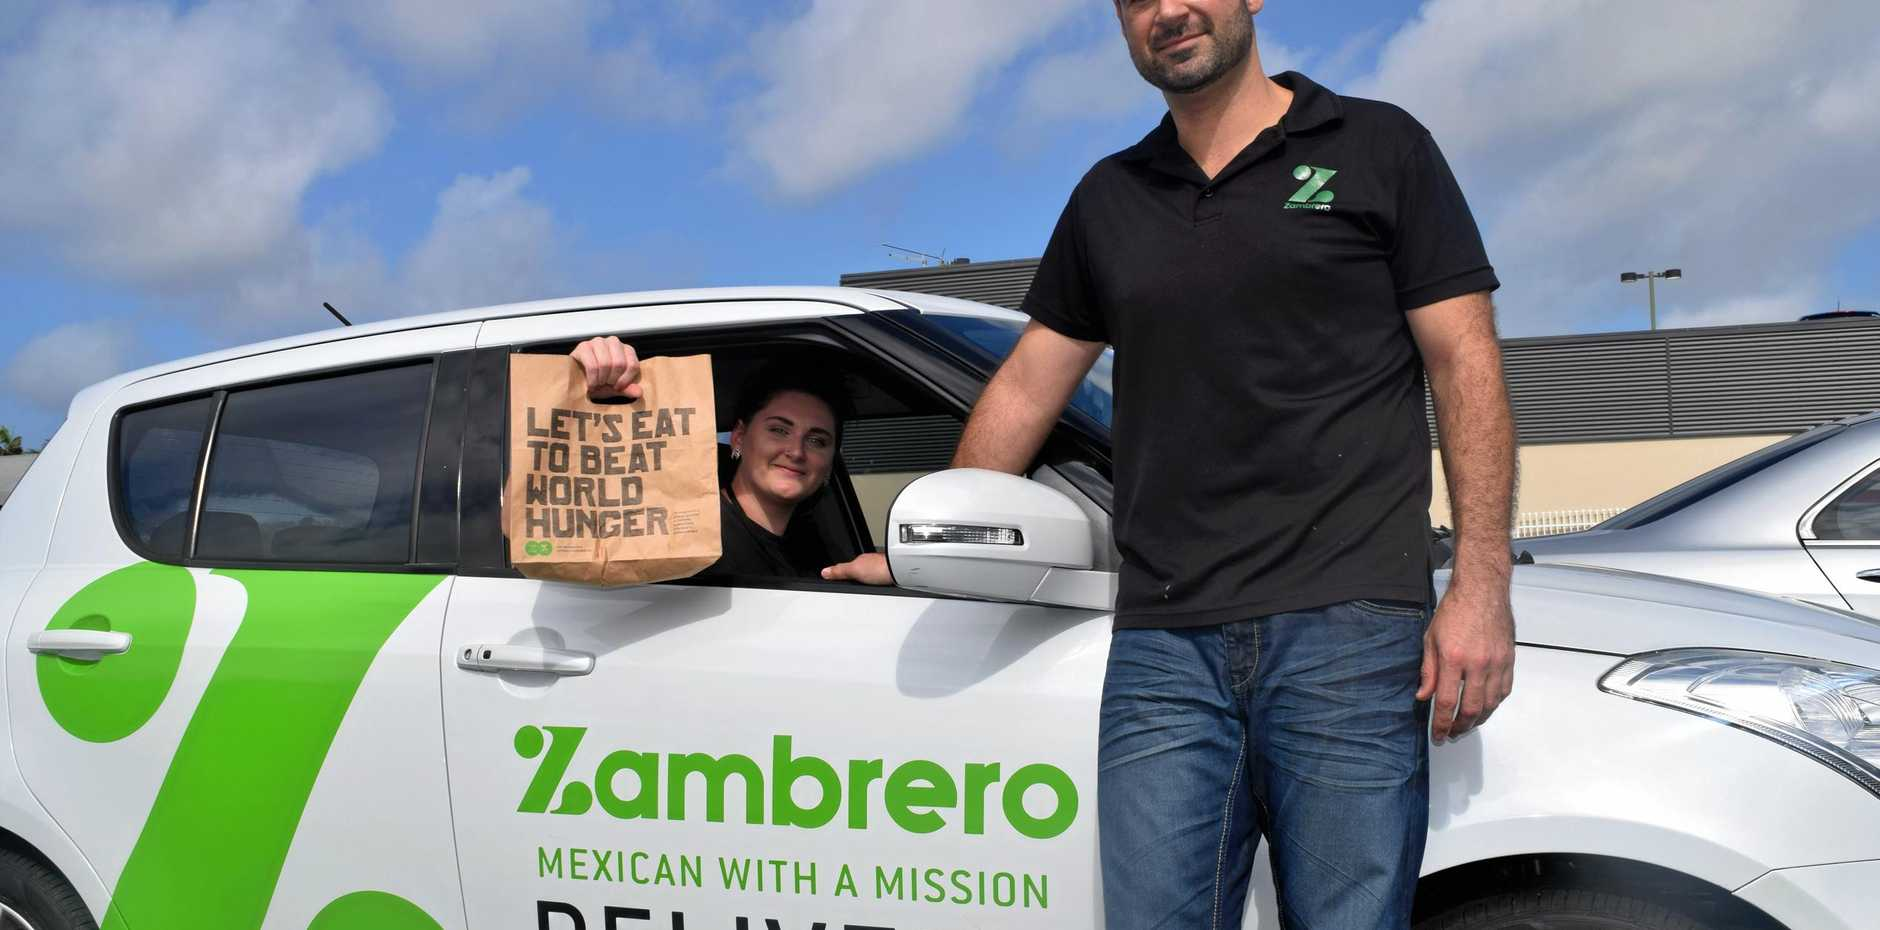 Zambrero employee Emma Crocker on the way to a delivery with franchise partner Peter Quinn.